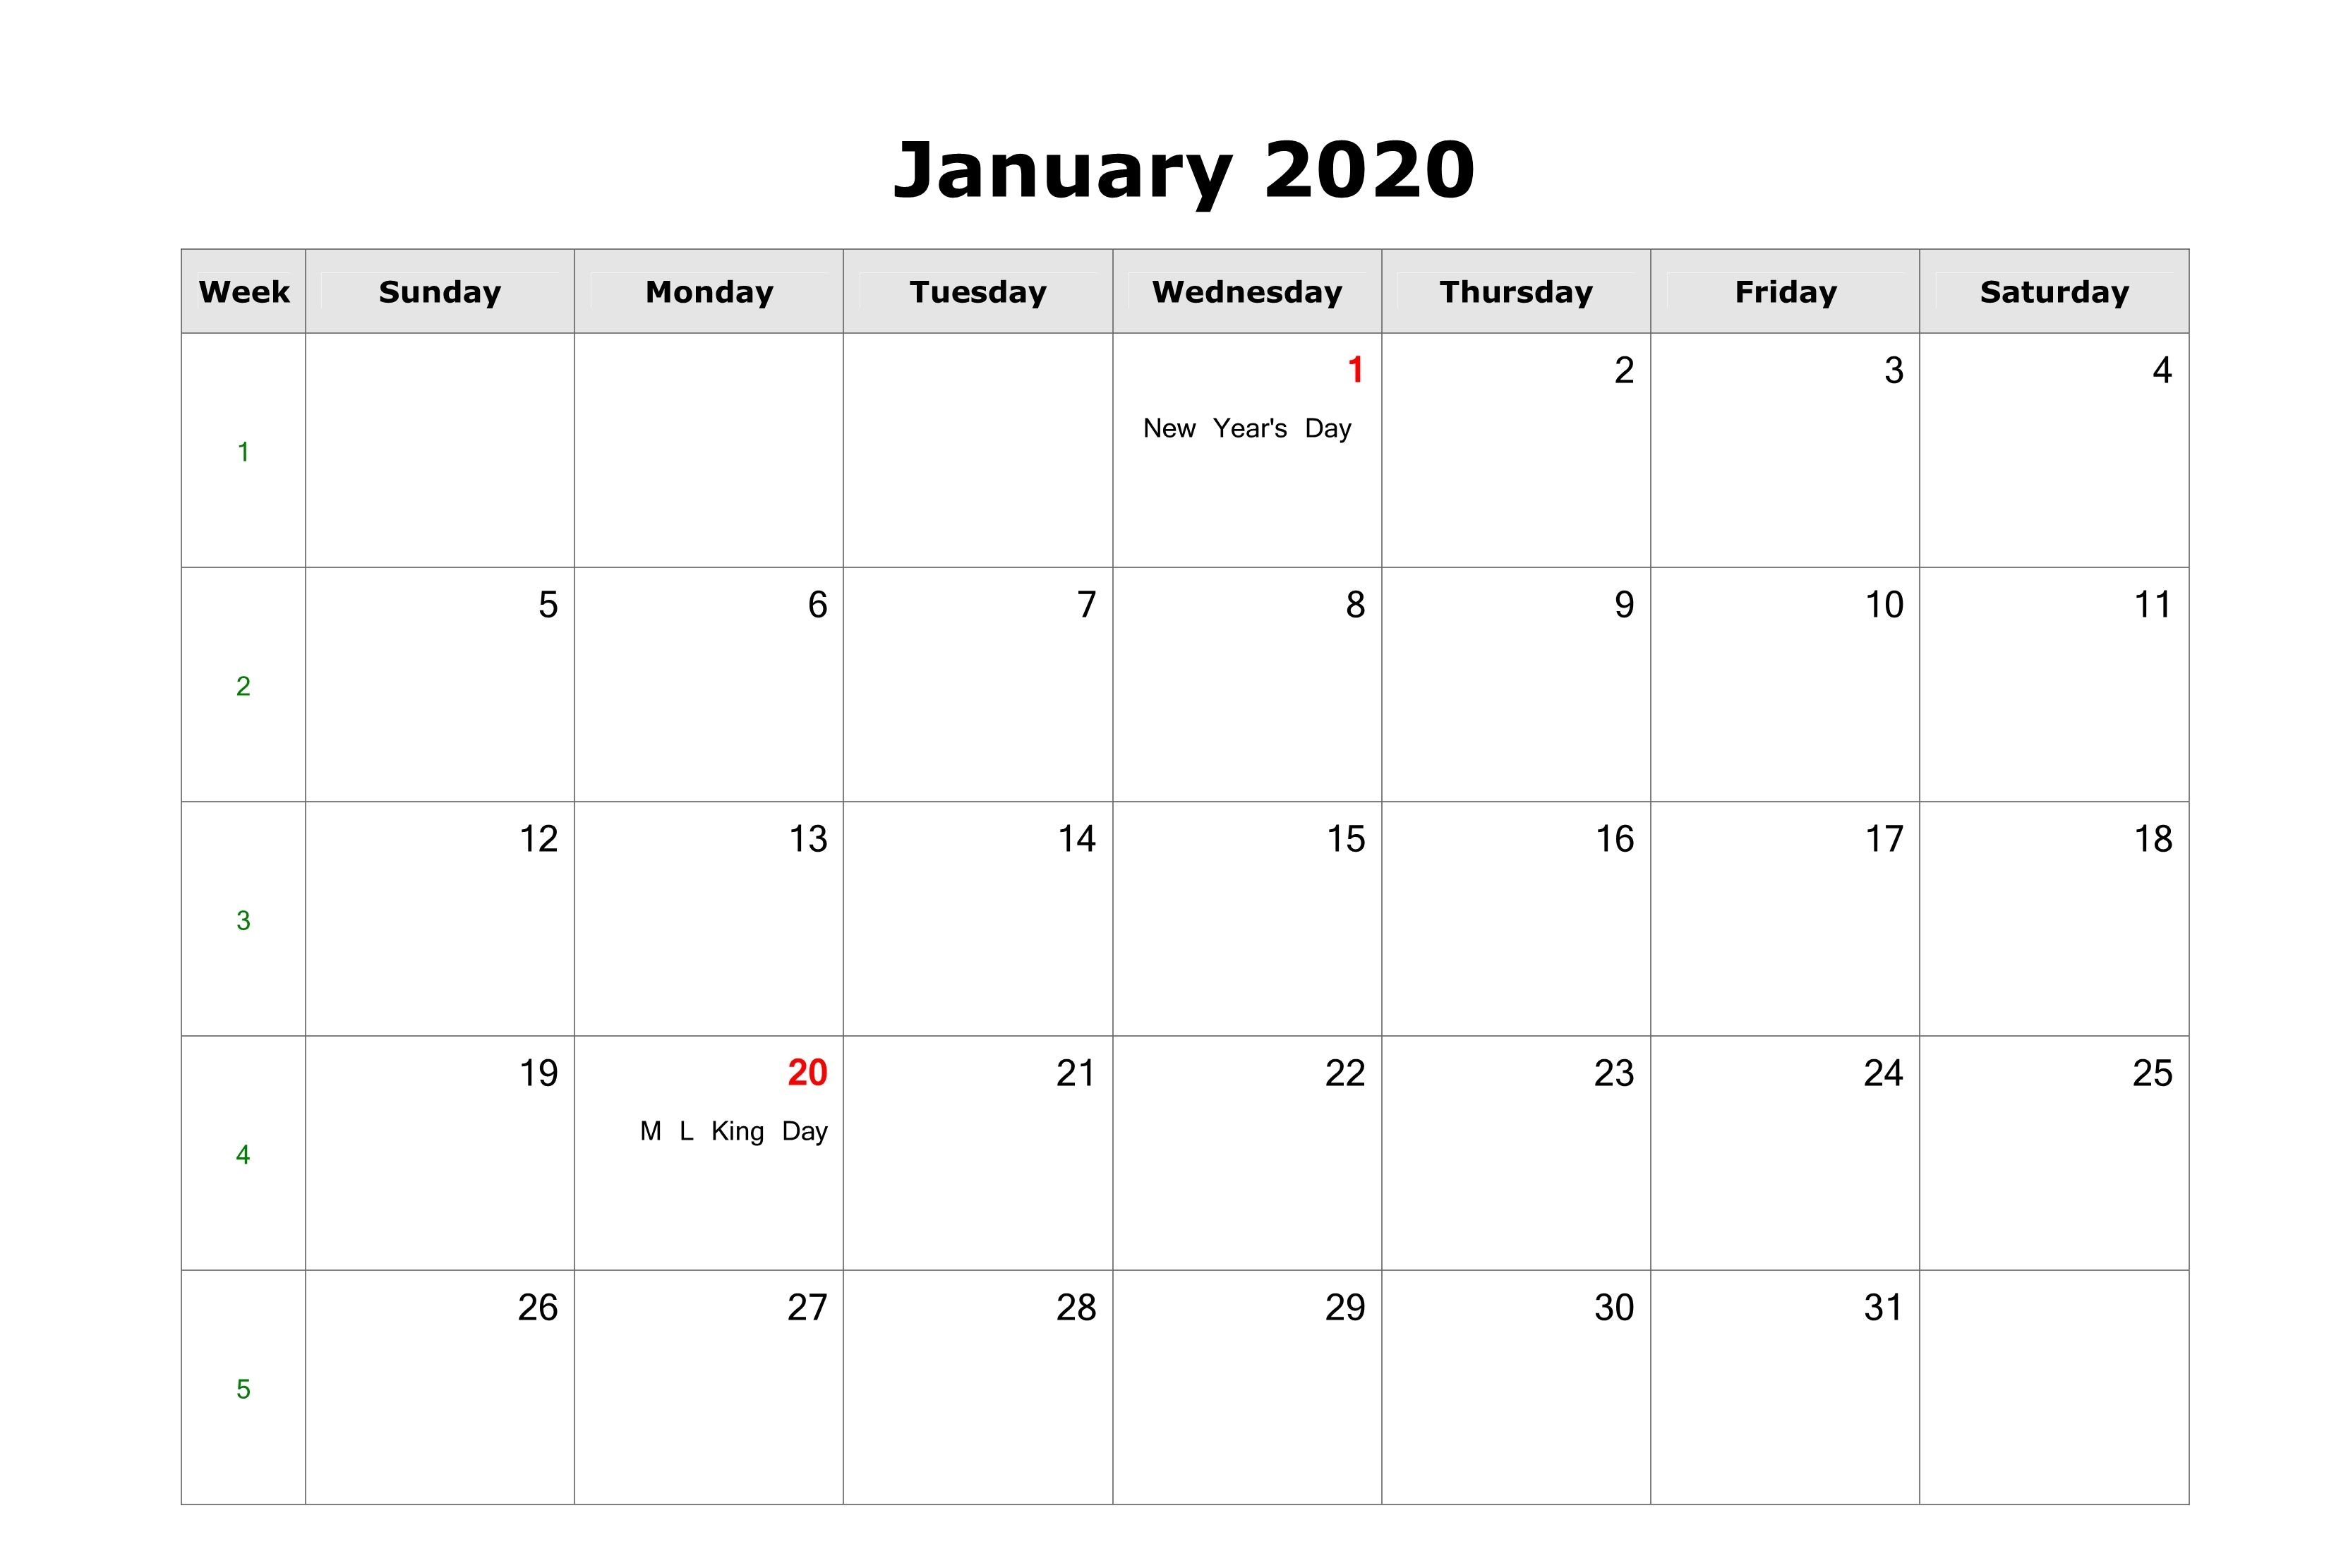 Free Fillable January Calendar 2020 Printable Editable With Notes